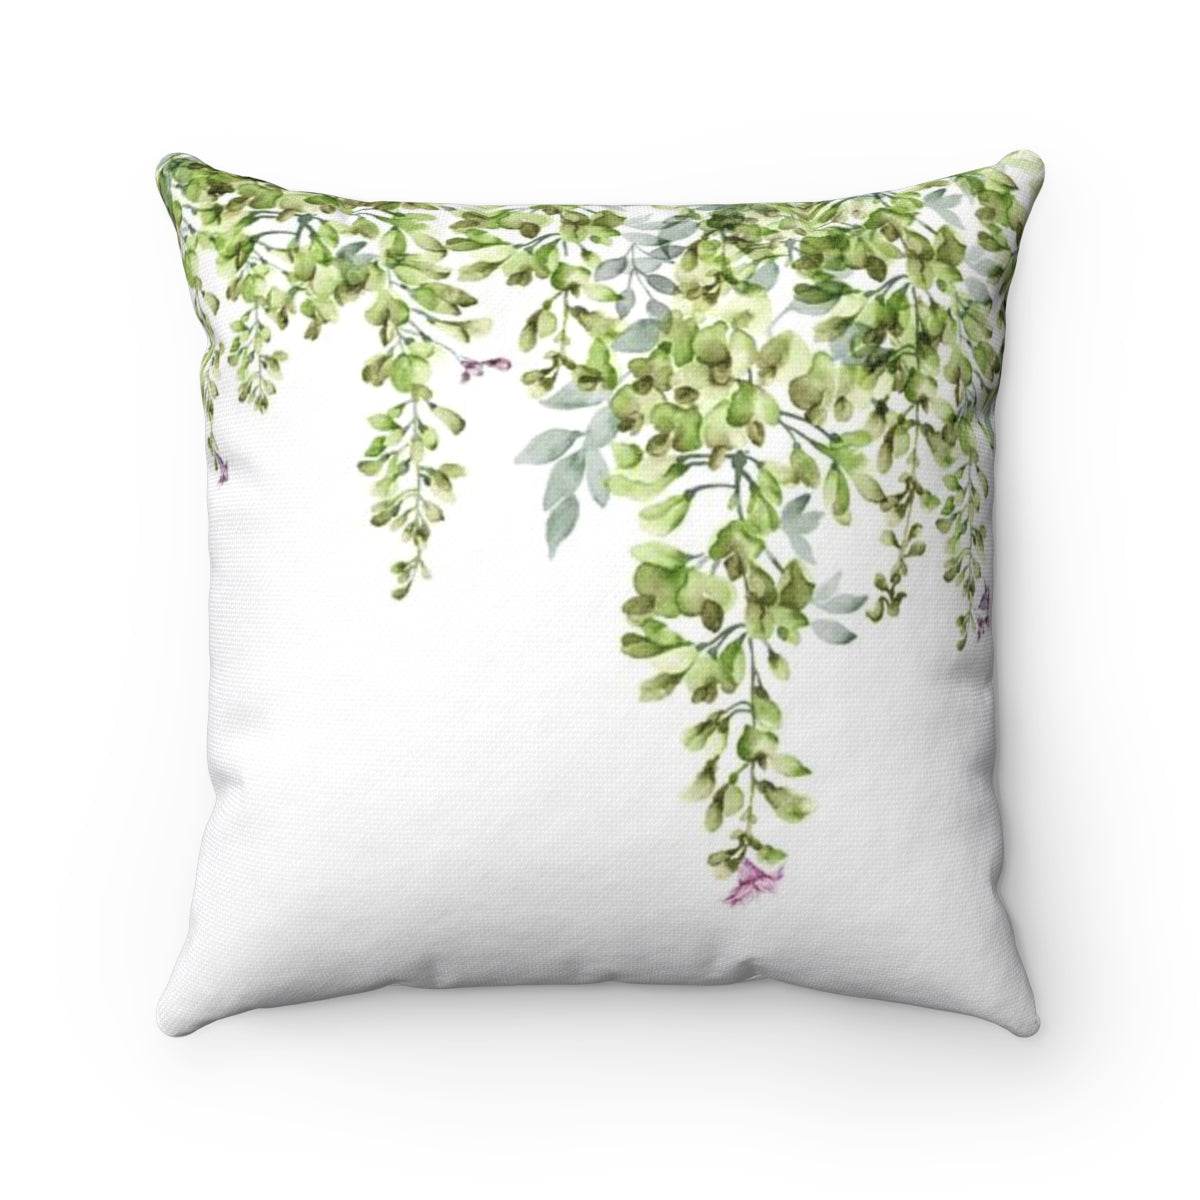 Leaves Throw Pillow - Liz Kapiloto Art & Design